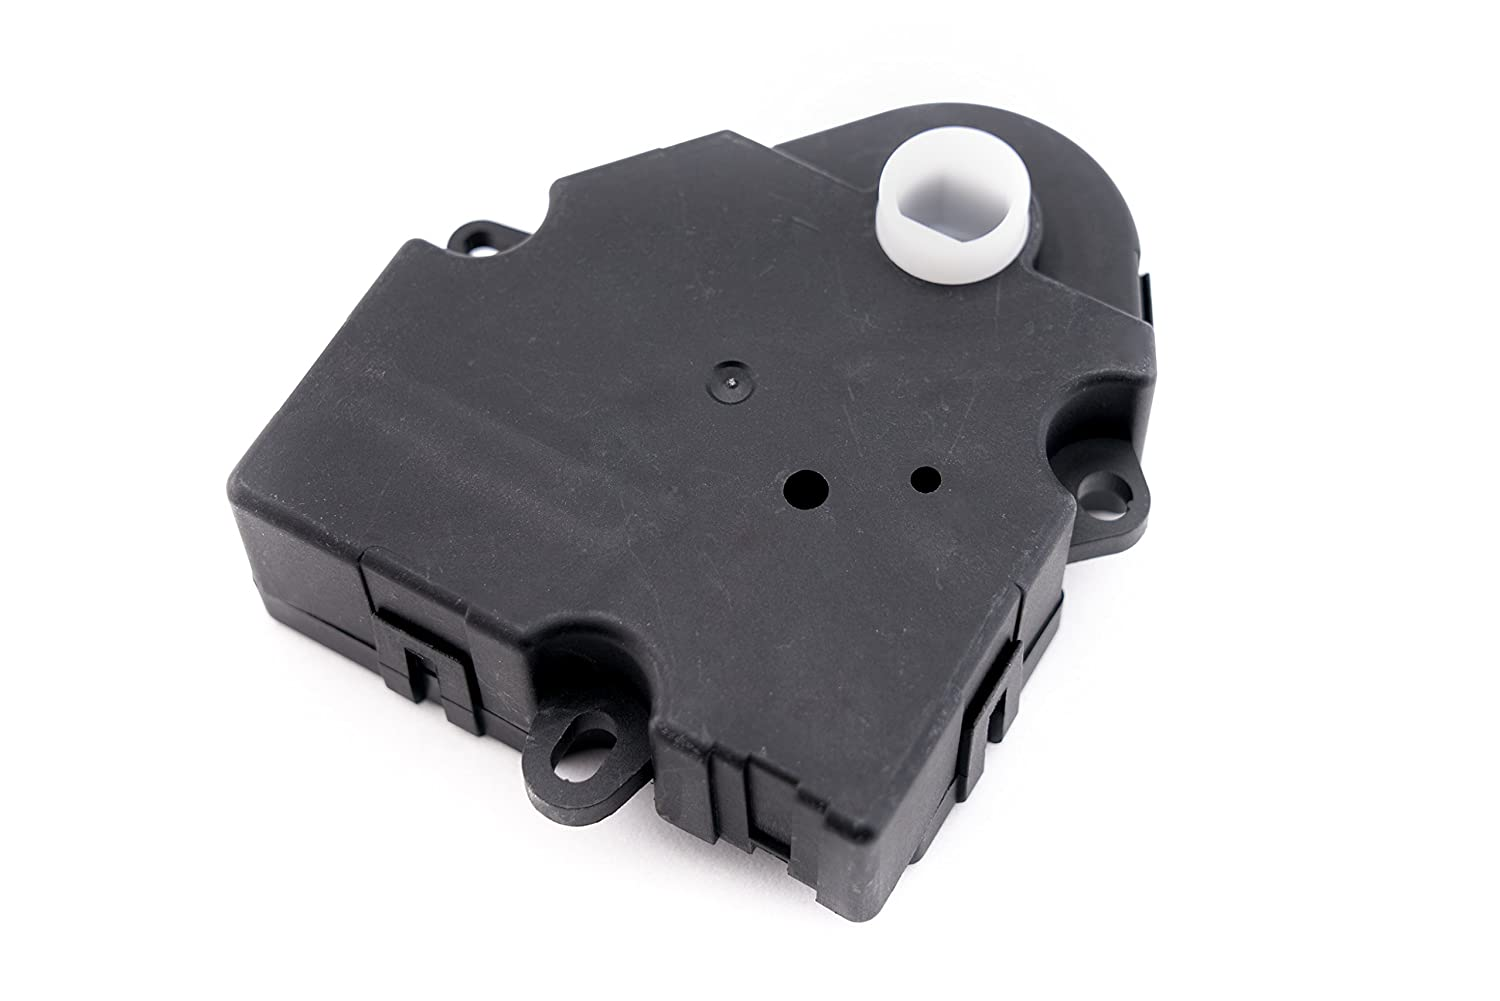 Air Door Actuator - Replaces# 89018365, 604-106, 52402588 - 1994-2012 Chevrolet, Chevy, GMC - Silverado 1500 & 2500, Tahoe, Sierra - HVAC Blend Control Actuator - Heater Blend Door Image